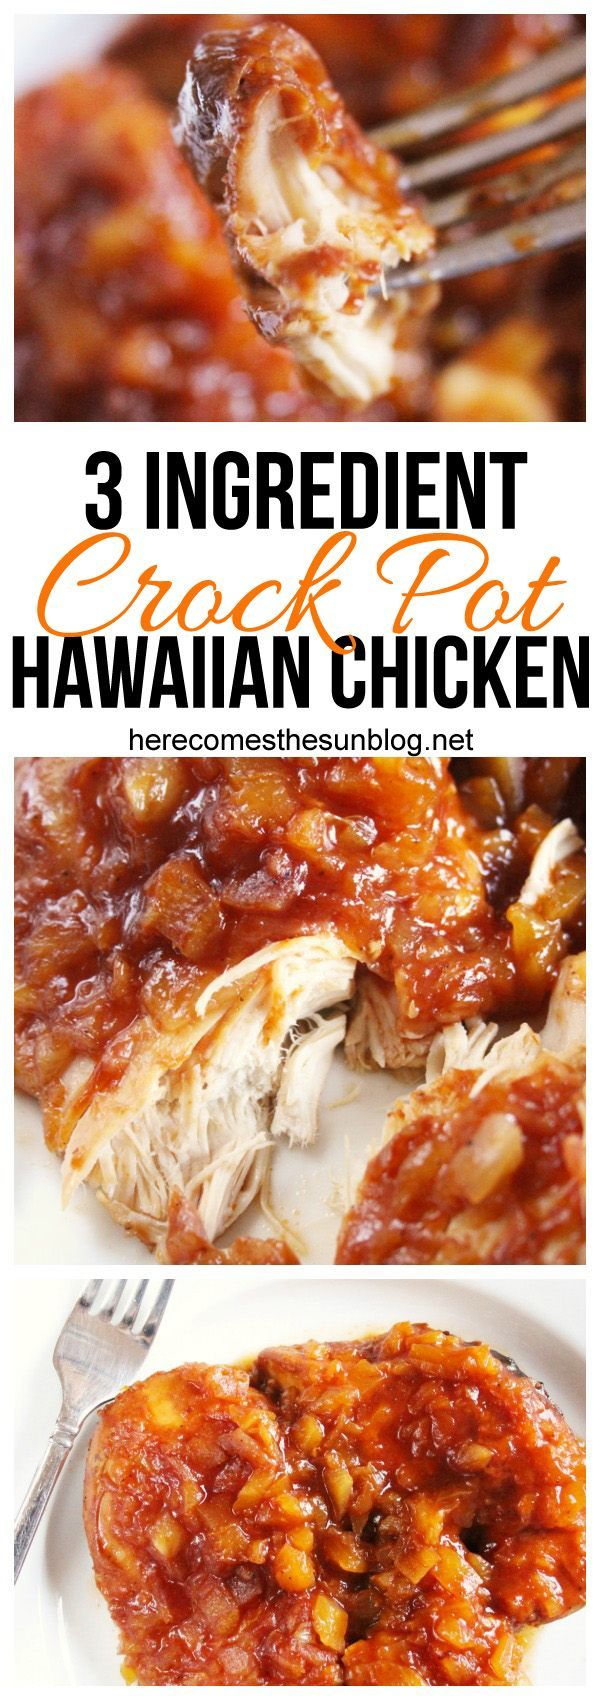 Low sodium crock pot recipes easy